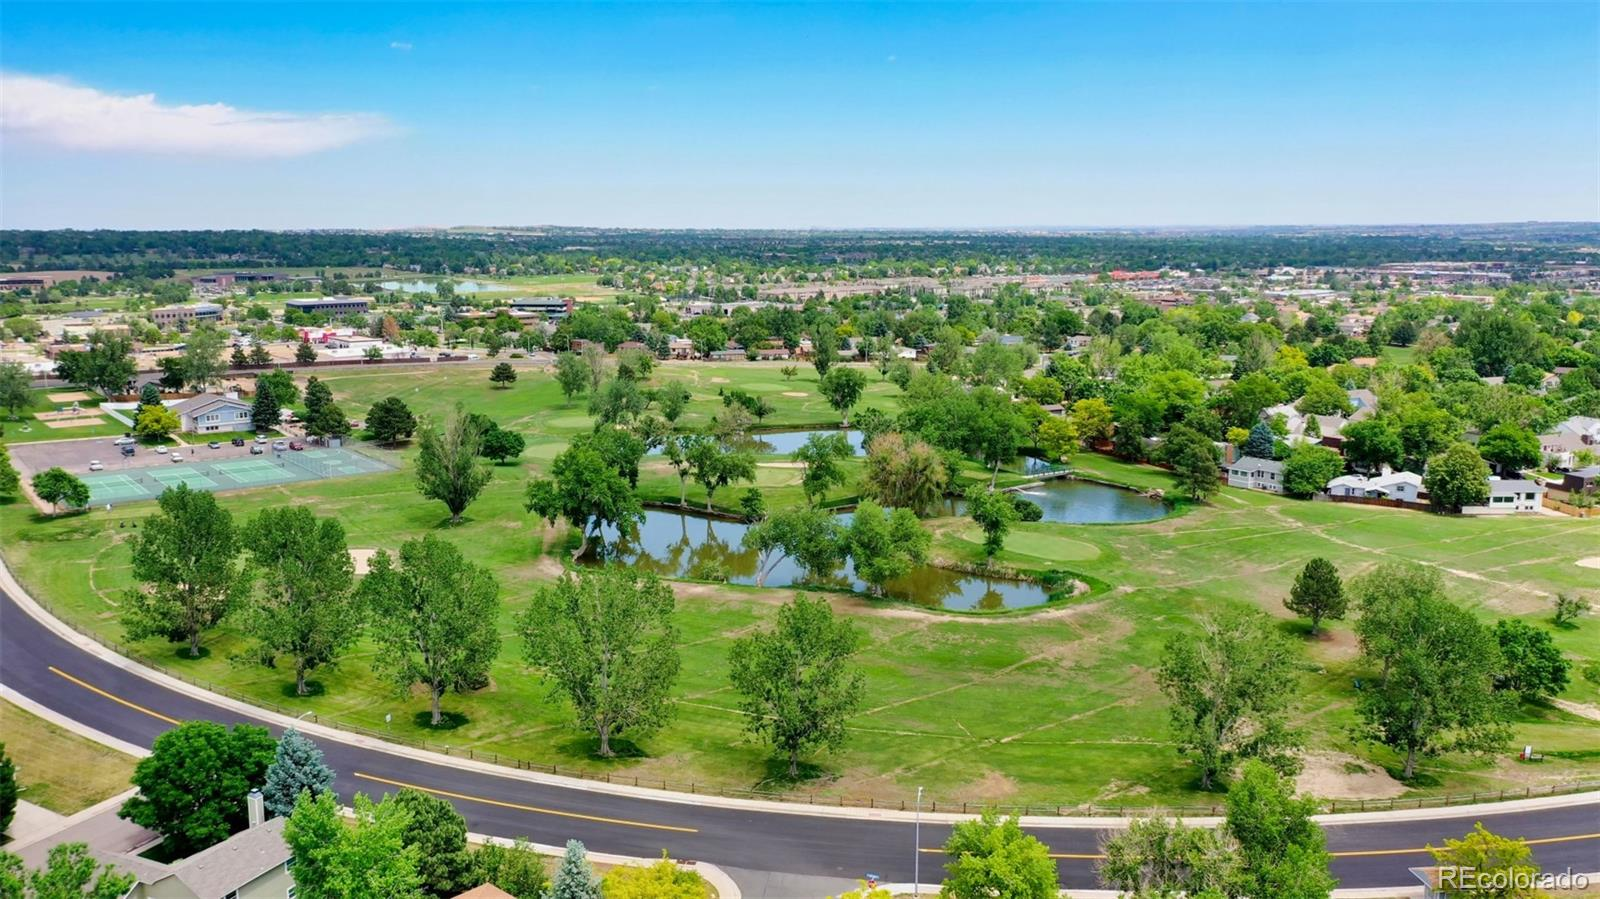 MLS# 3885943 - 37 - 313 Mulberry Circle, Broomfield, CO 80020